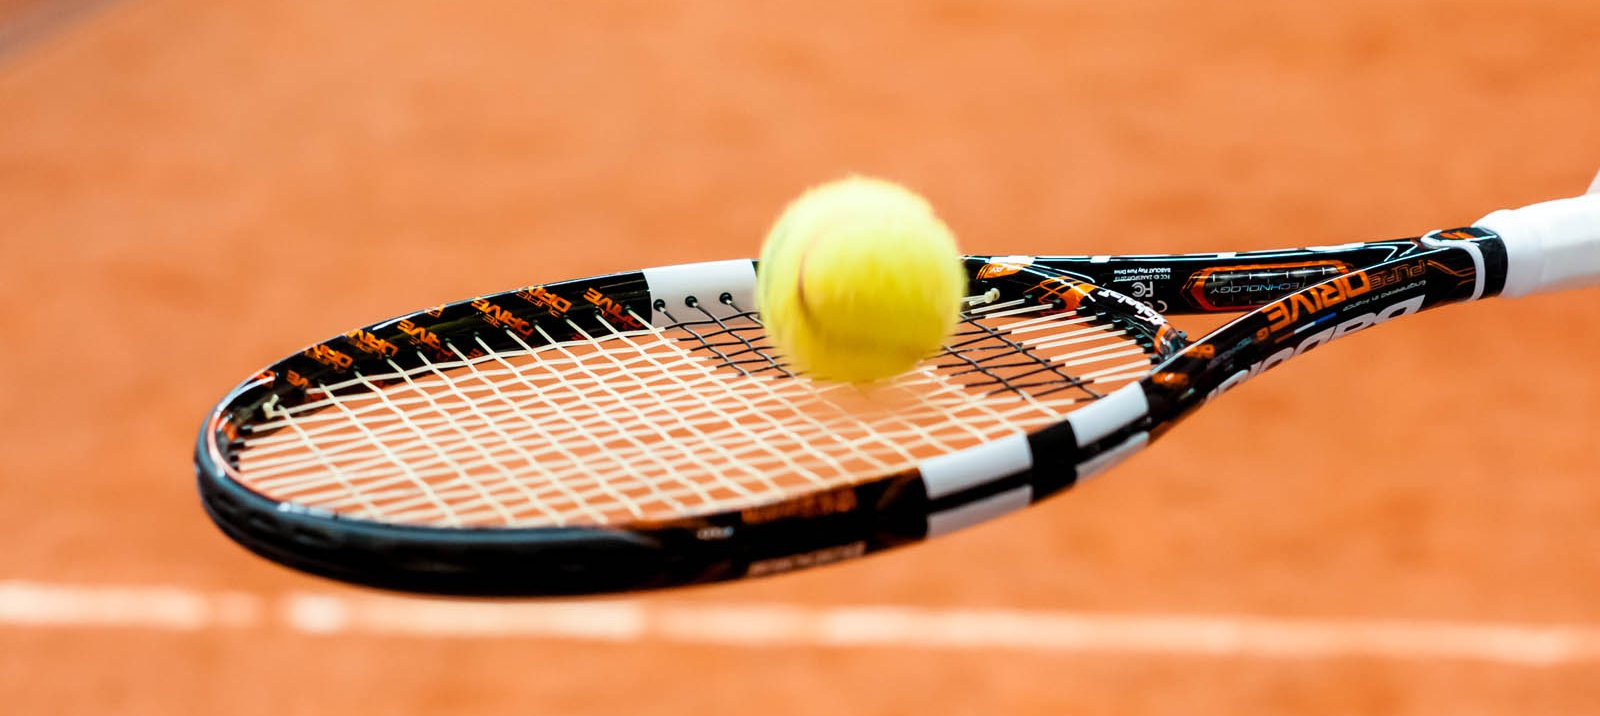 Grenoble champion de france universitaire lsd le - Choisir sa raquette de tennis de table ...